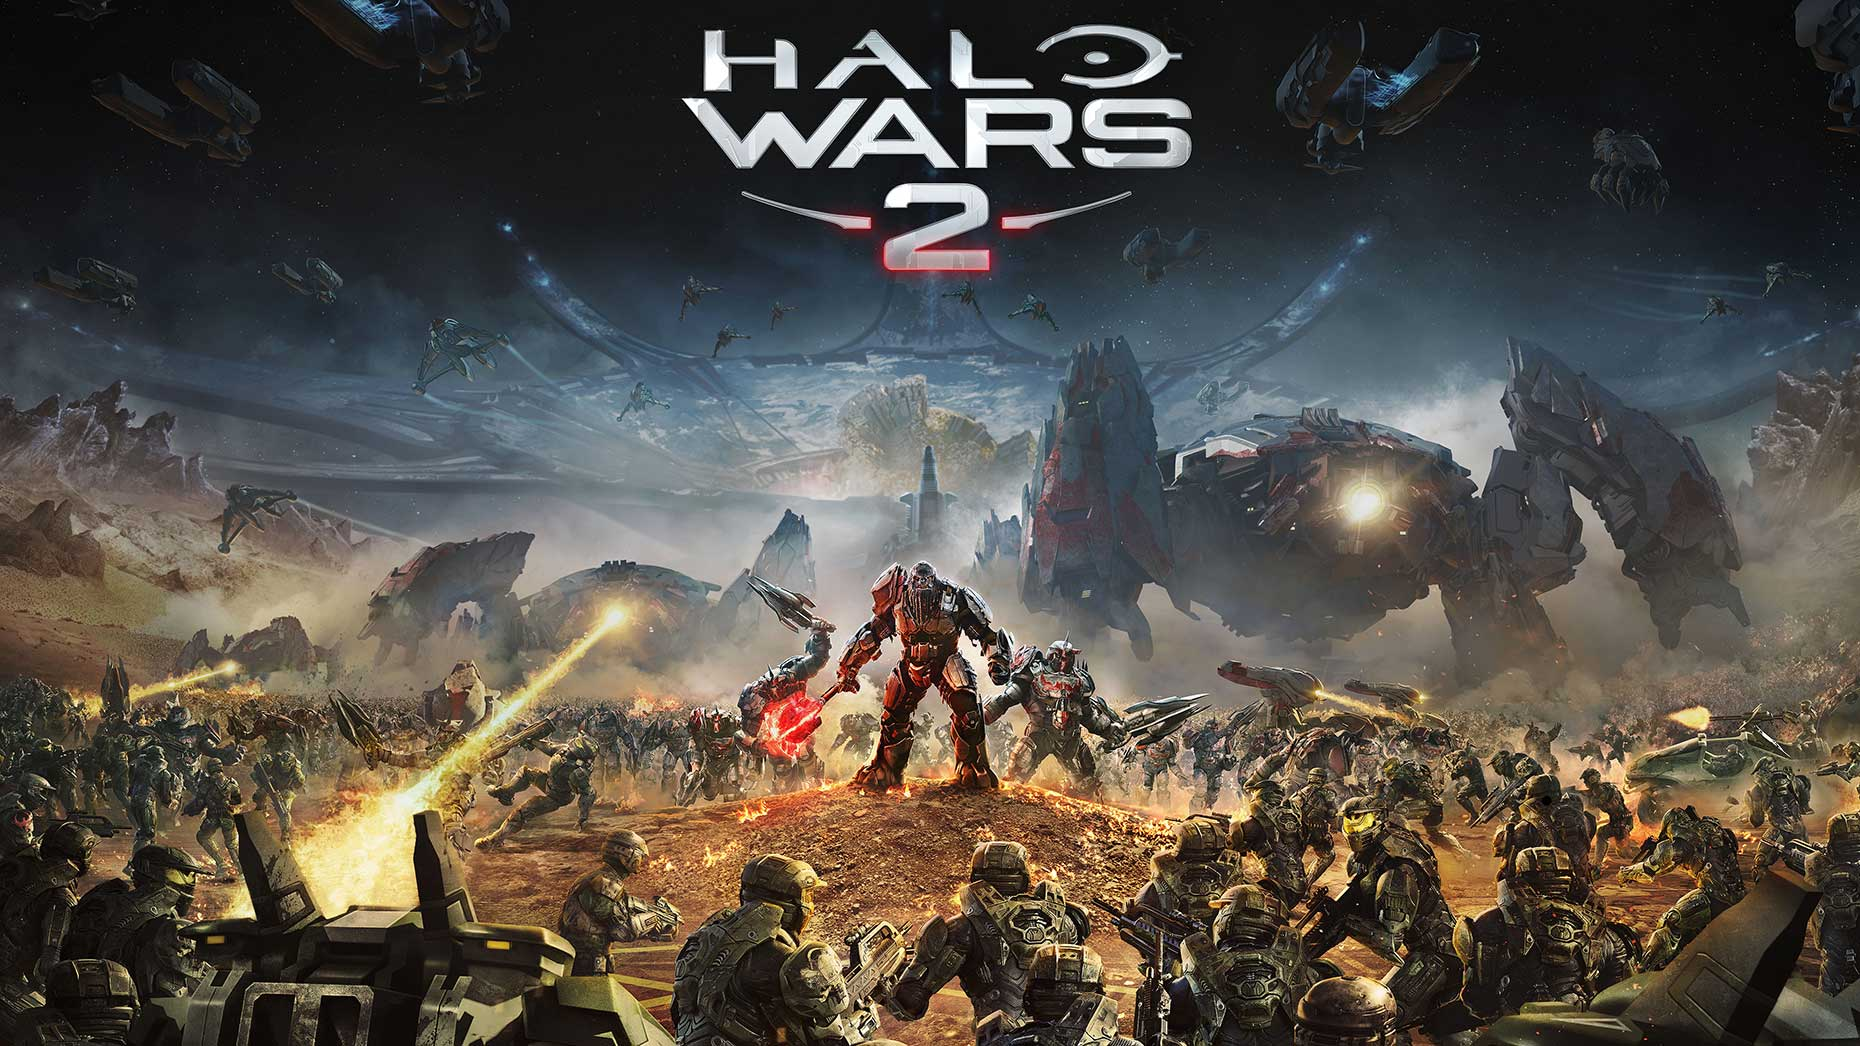 Battlescene war scene for key art of Halo Wars 2